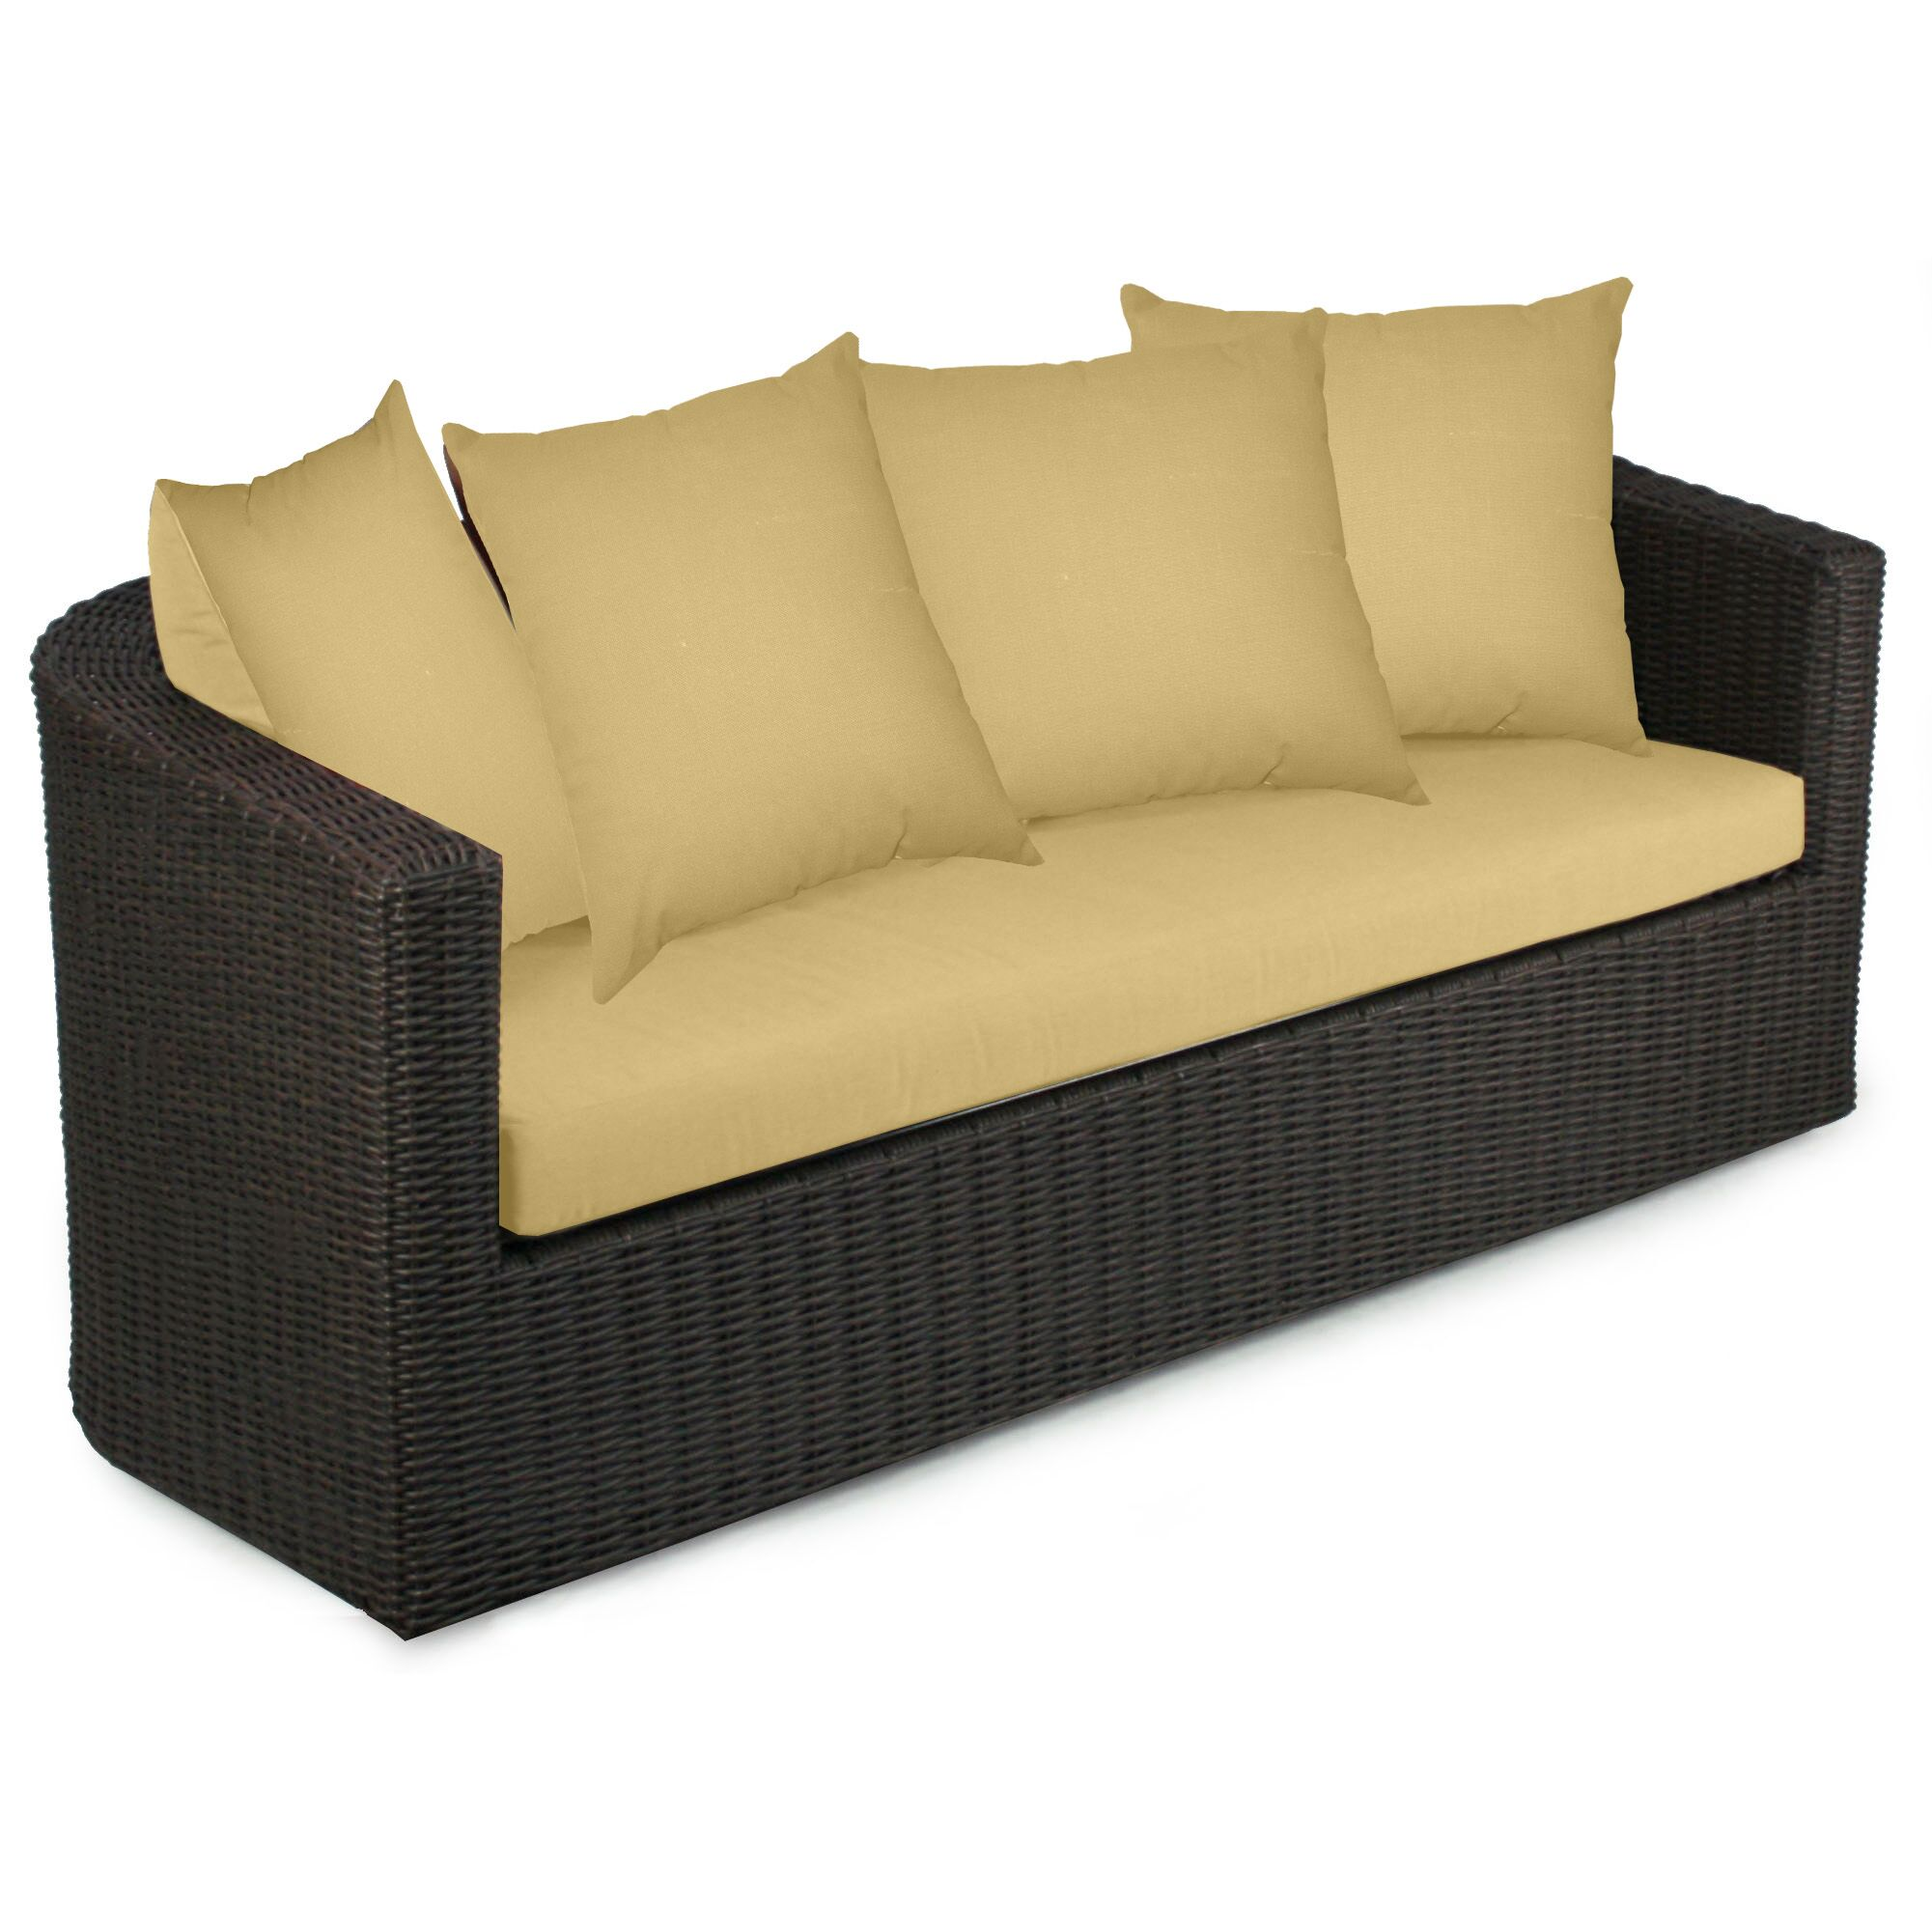 Palomar Sofa with Cushions Fabric: Daffodil